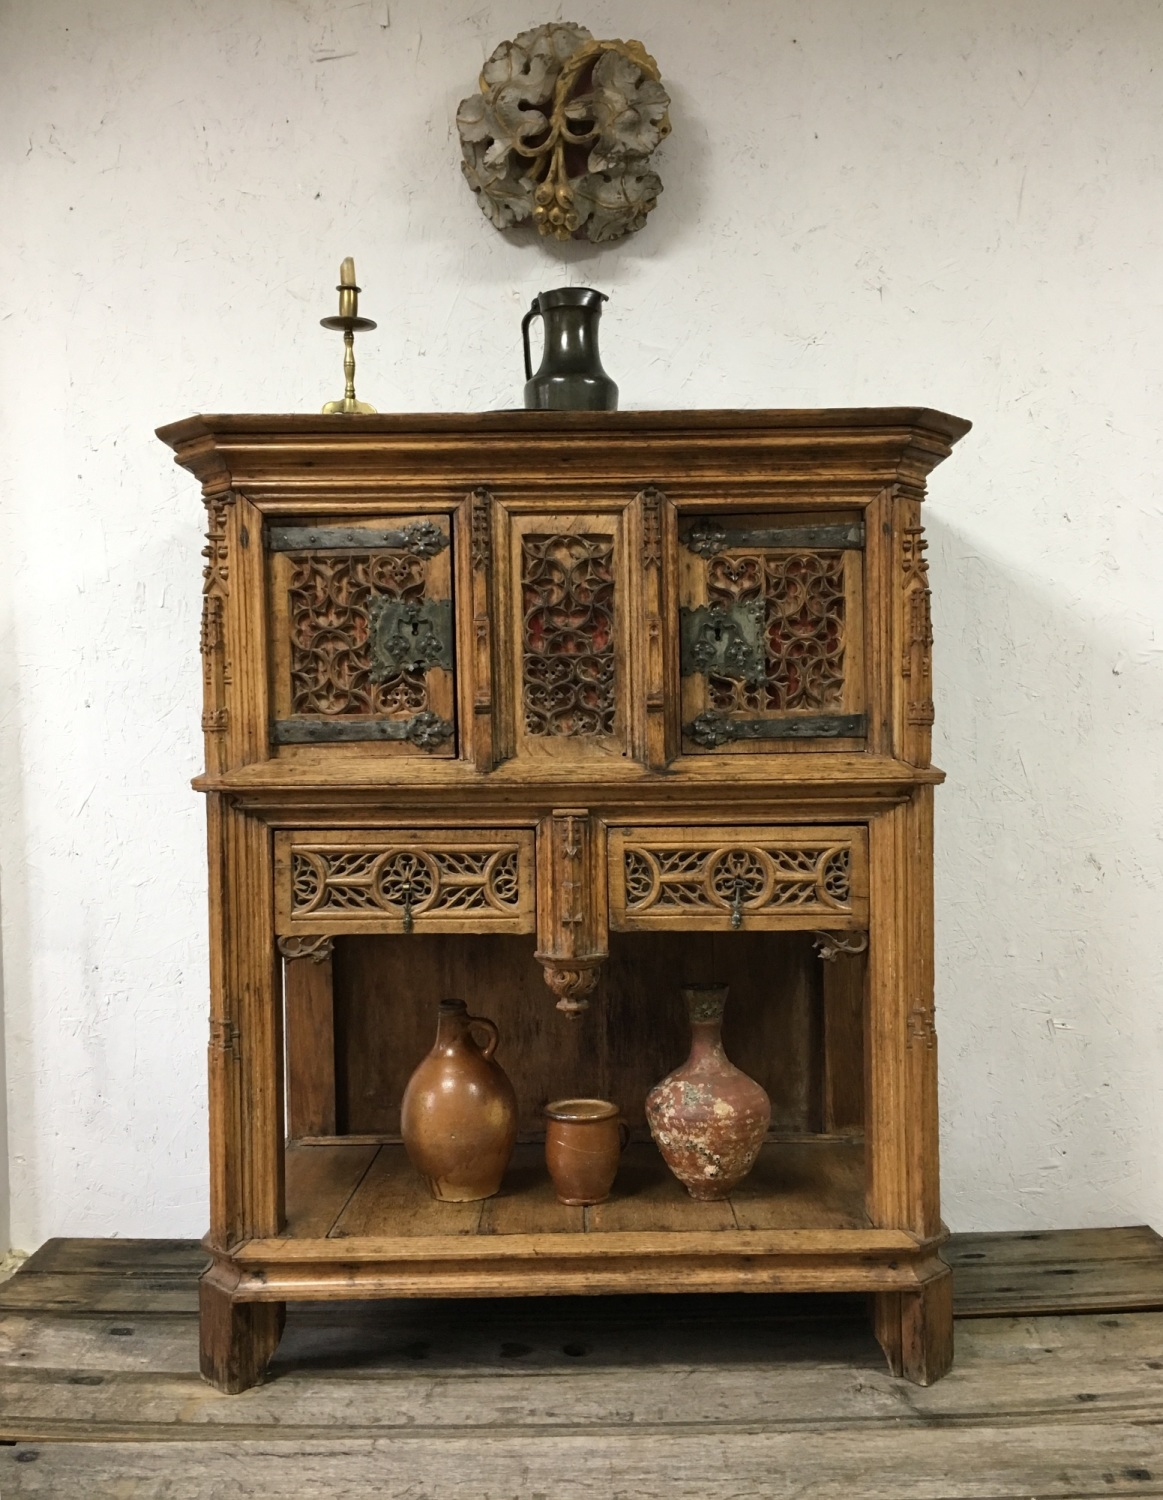 Late 15th Early 16th Century French Gothic Carved Oak Dressoir